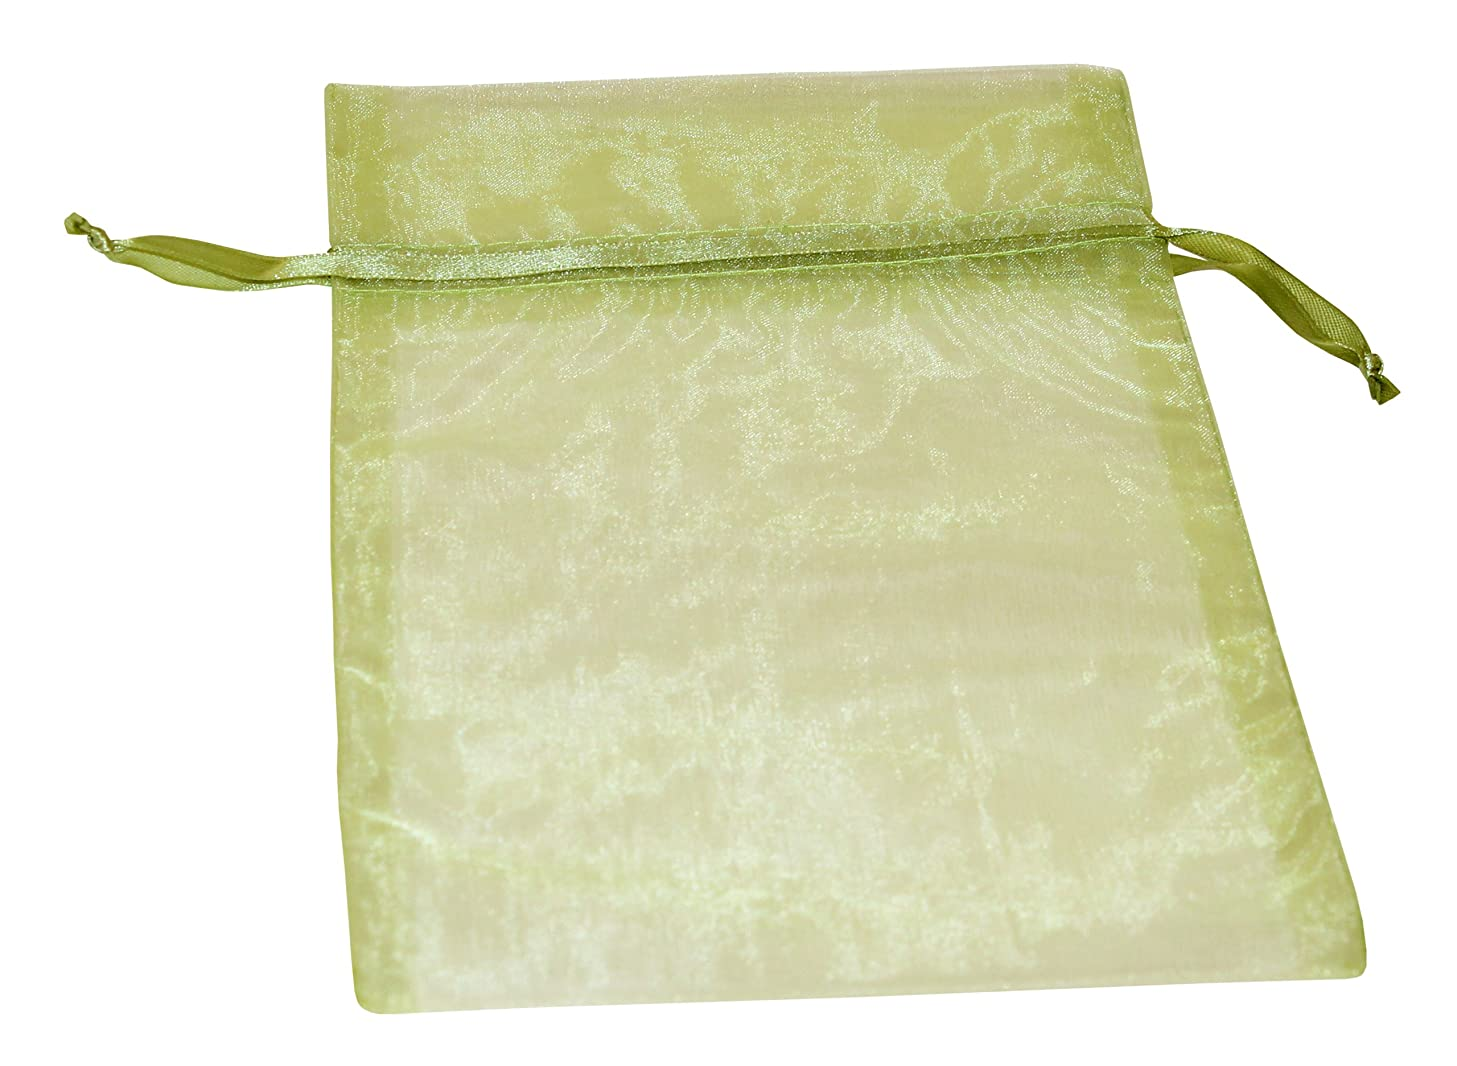 Premier Packaging AMZ-399934 20 Count Organza Bags, 6 by 10-Inch, Lime